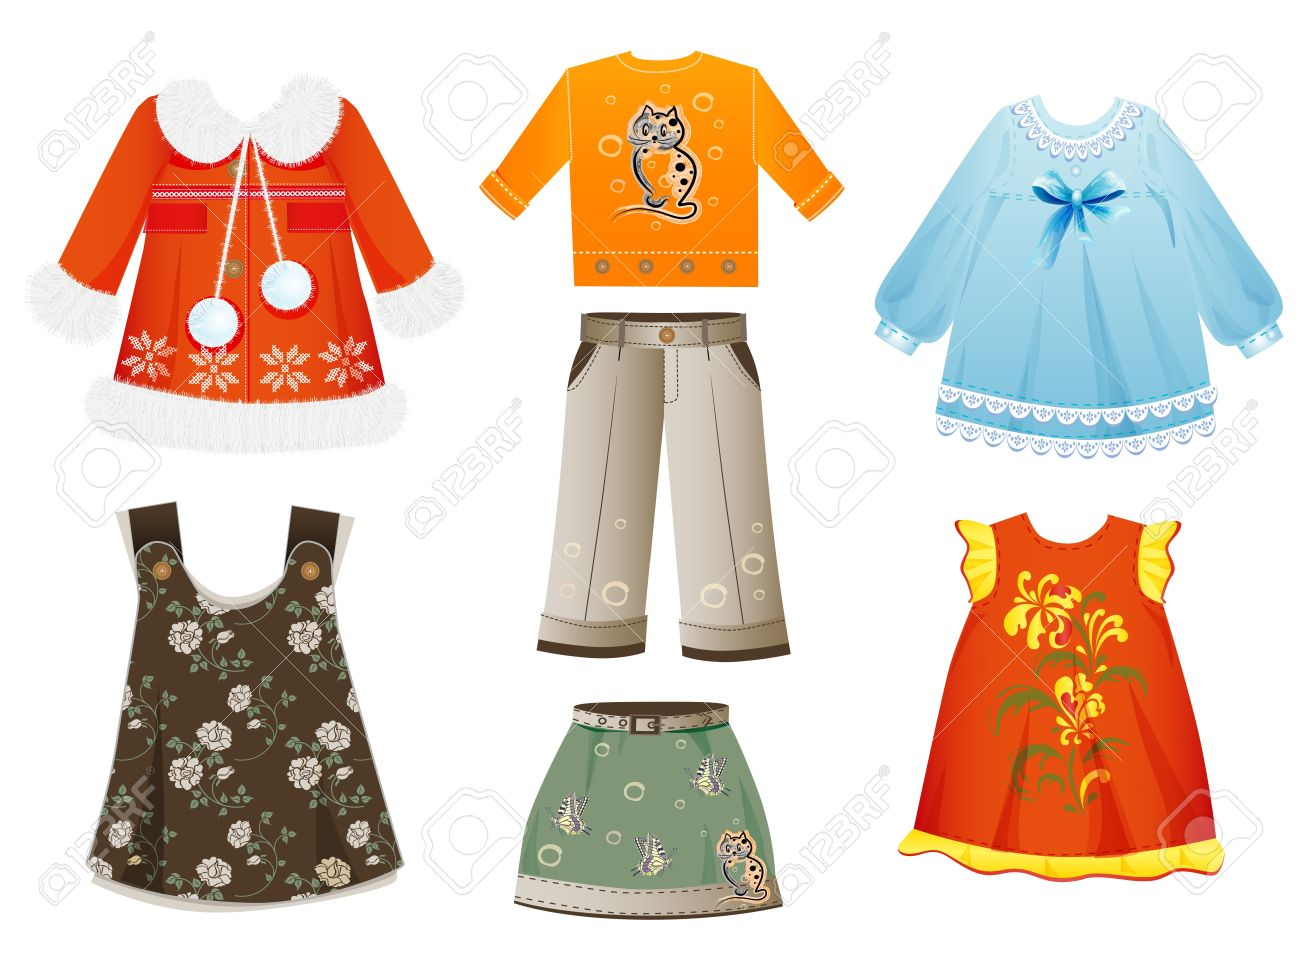 Set Of Seasonal Clothes For Girls Royalty Free Cliparts, Vectors ...